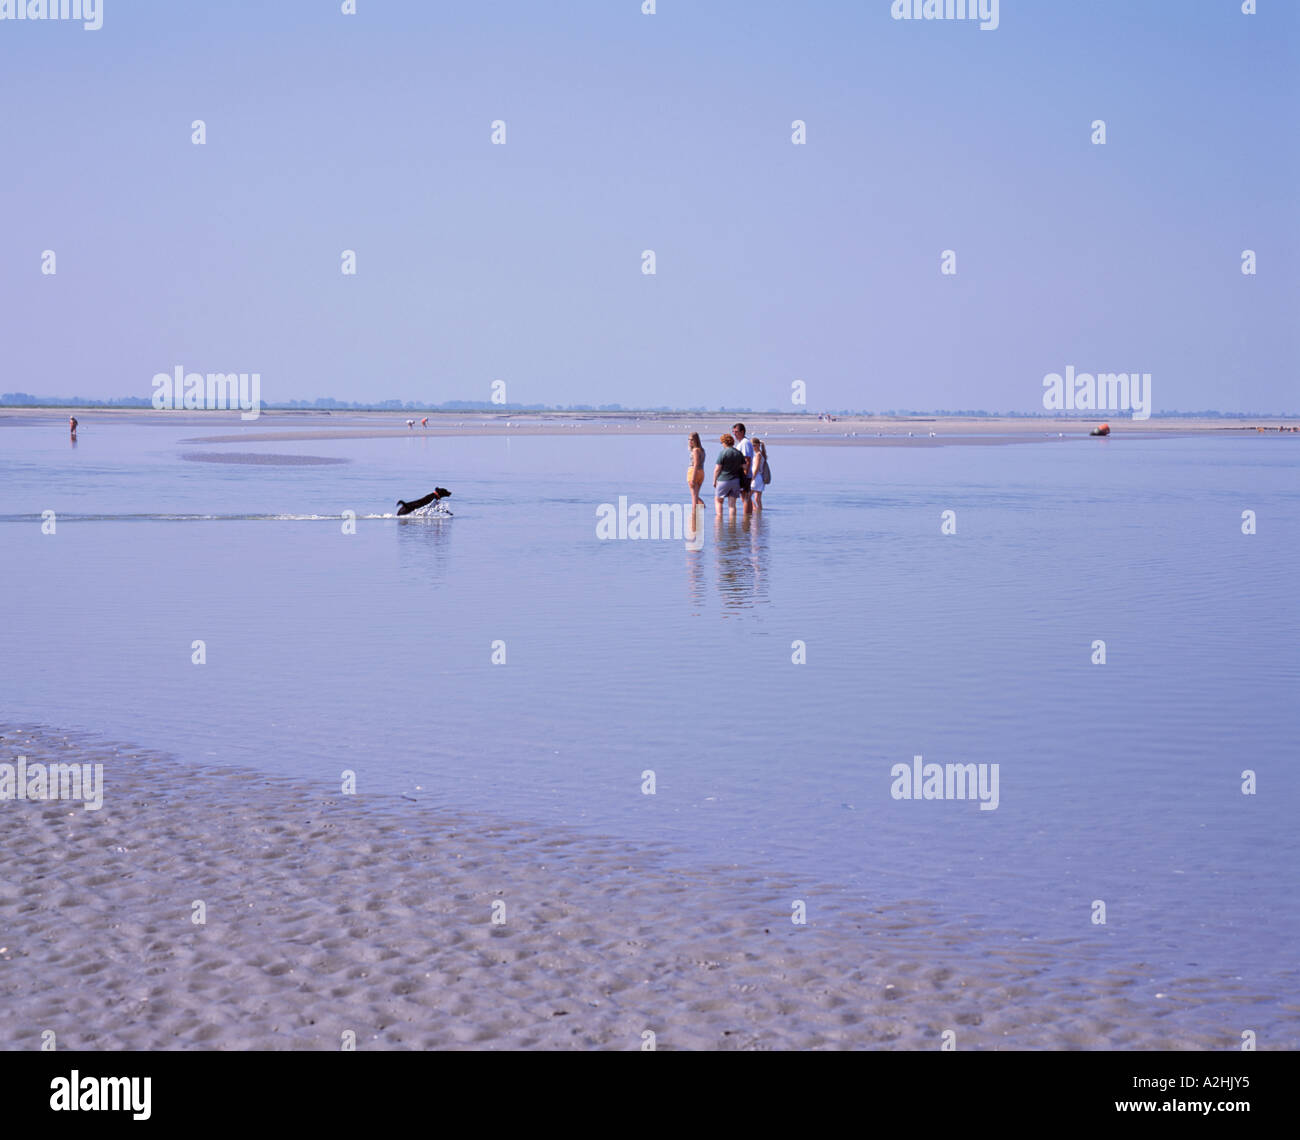 FRANCE PICARDY BAIE DE SOMME  LE CROTOY Stock Photo